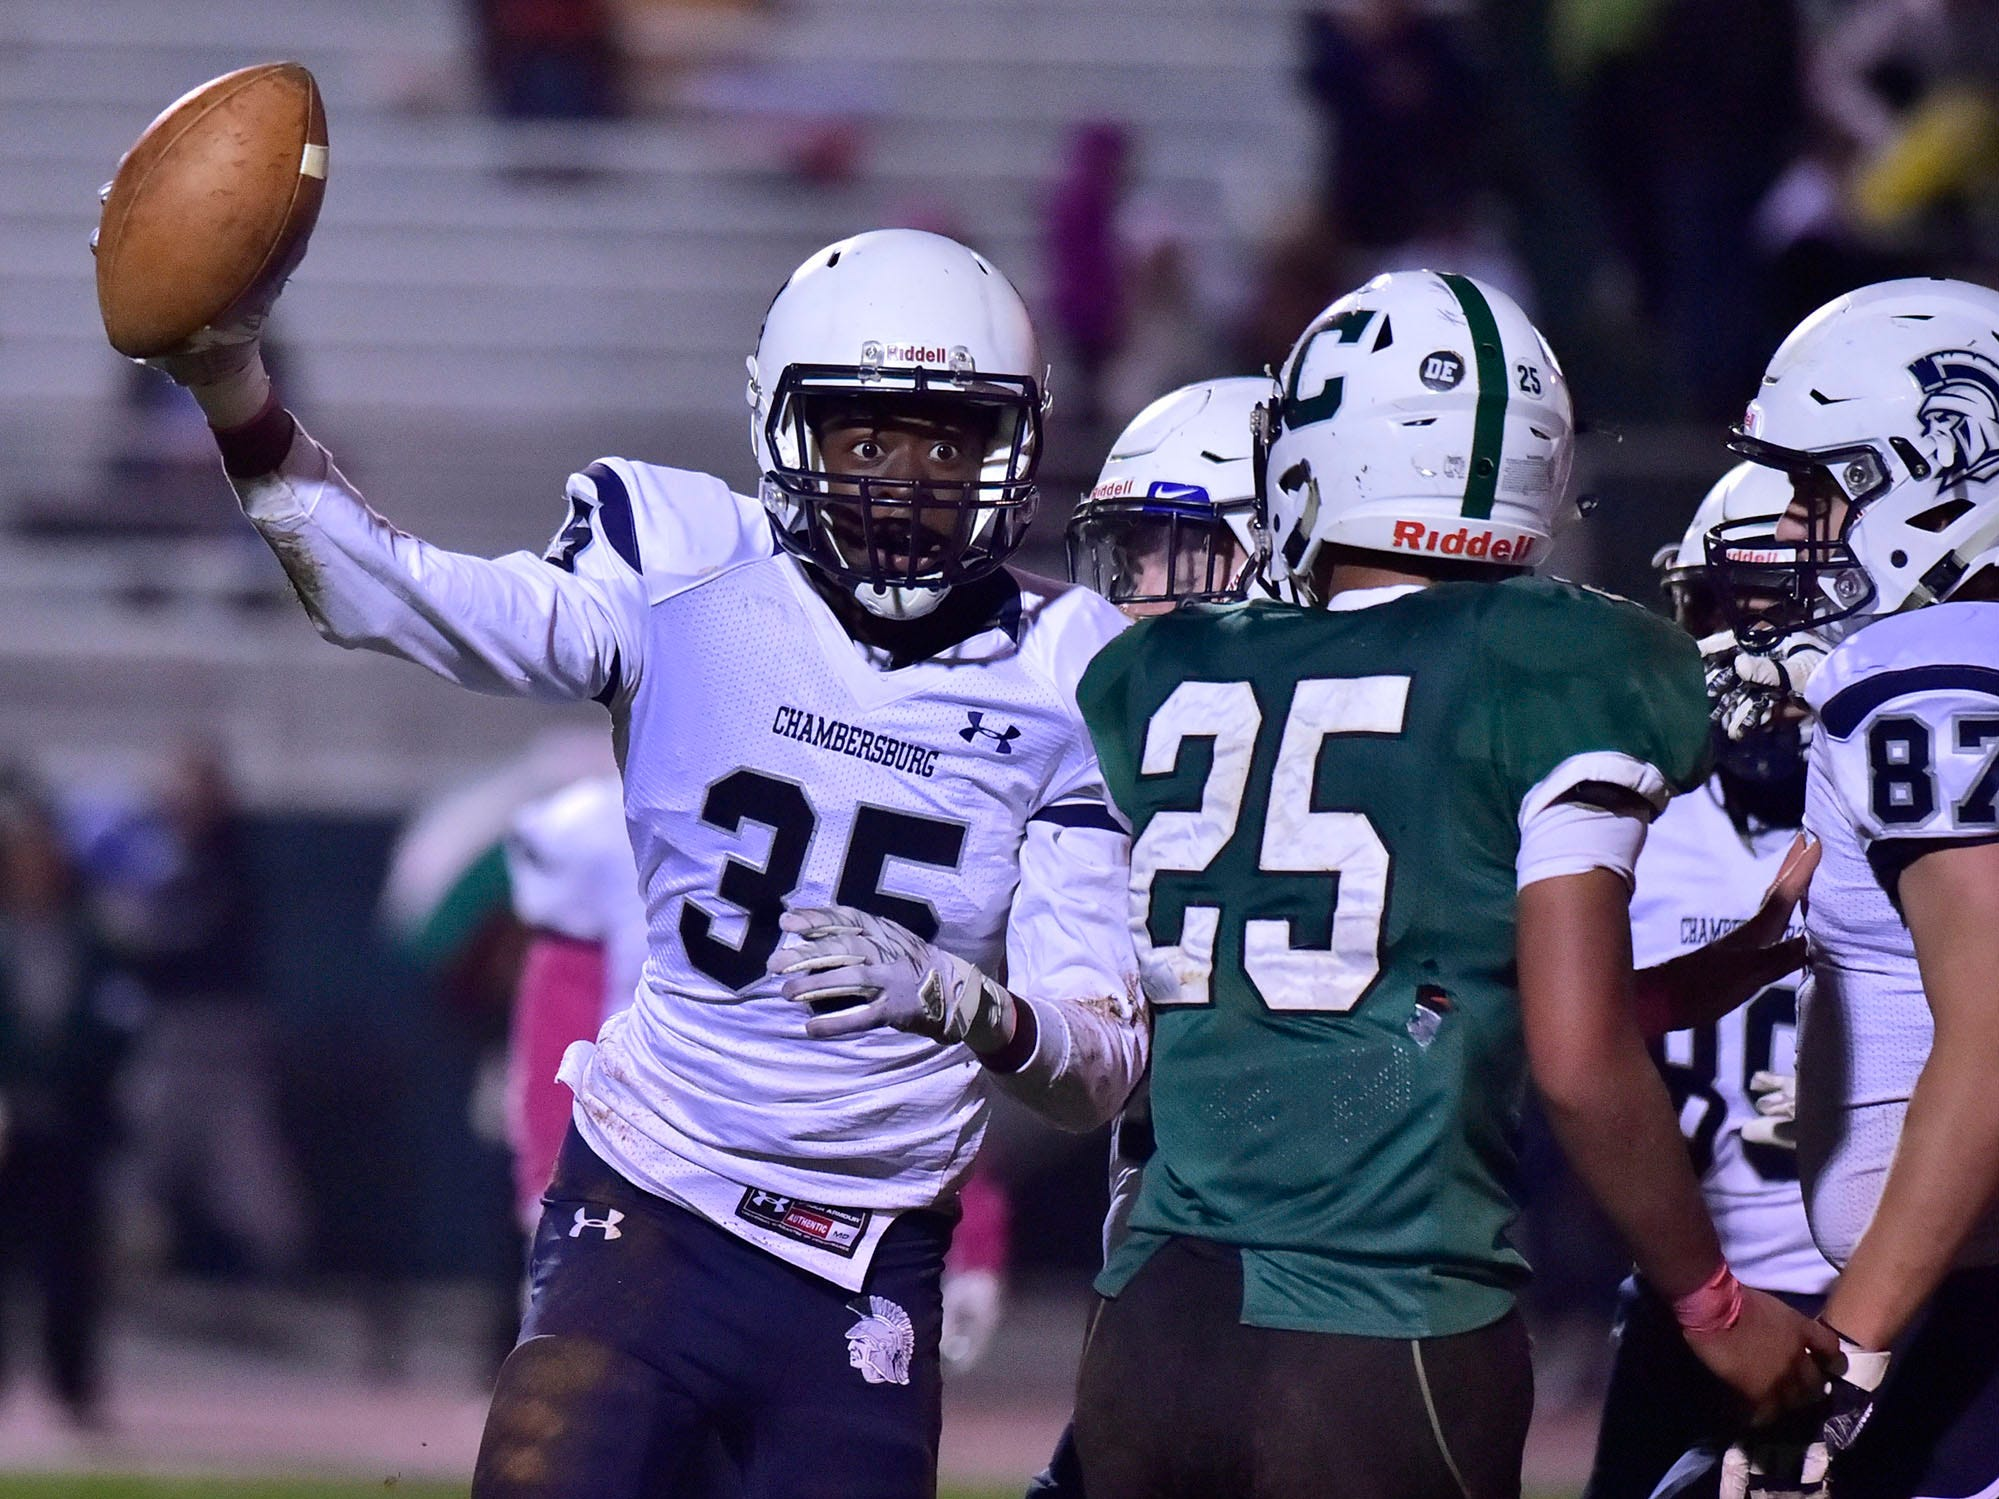 Chambersburg's DaQuon Rogers (35) celebrates a Trojan interception during the Carlisle game on Friday, October 26, 2018.